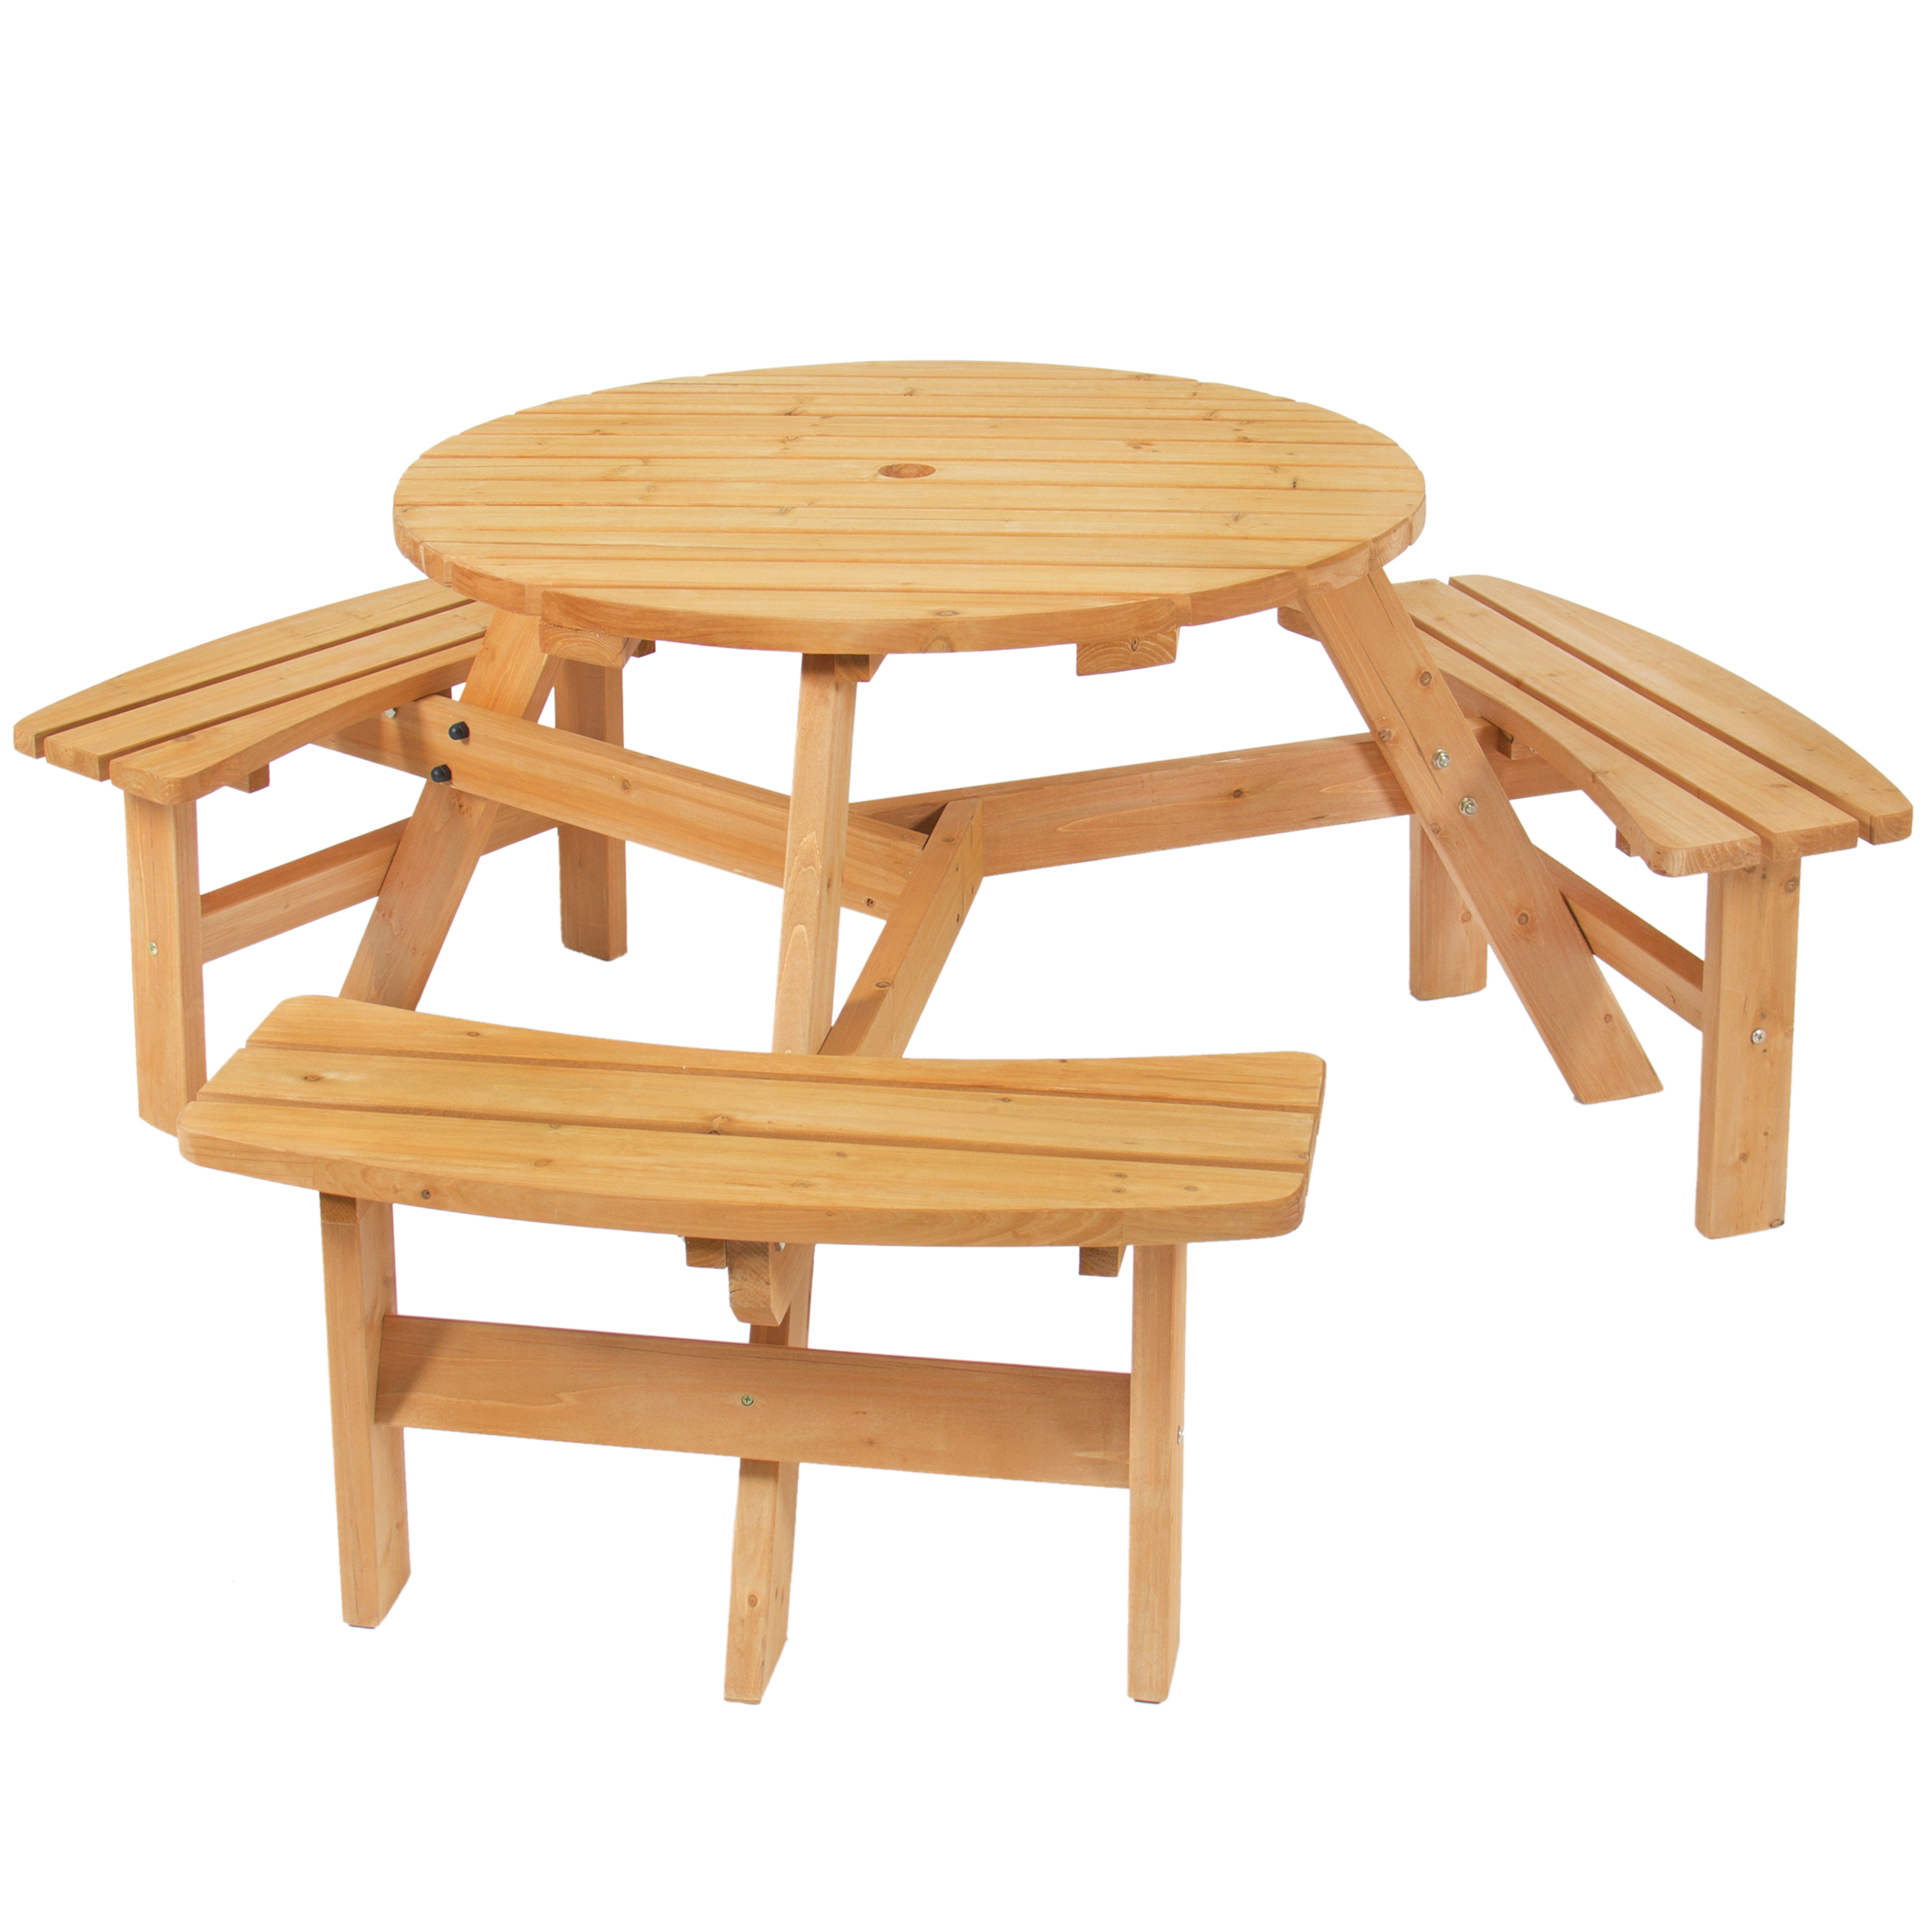 Best Choice Products 6-Person Outdoor Wood Picnic Table w  Natural Finish Brown by Best Choice Products